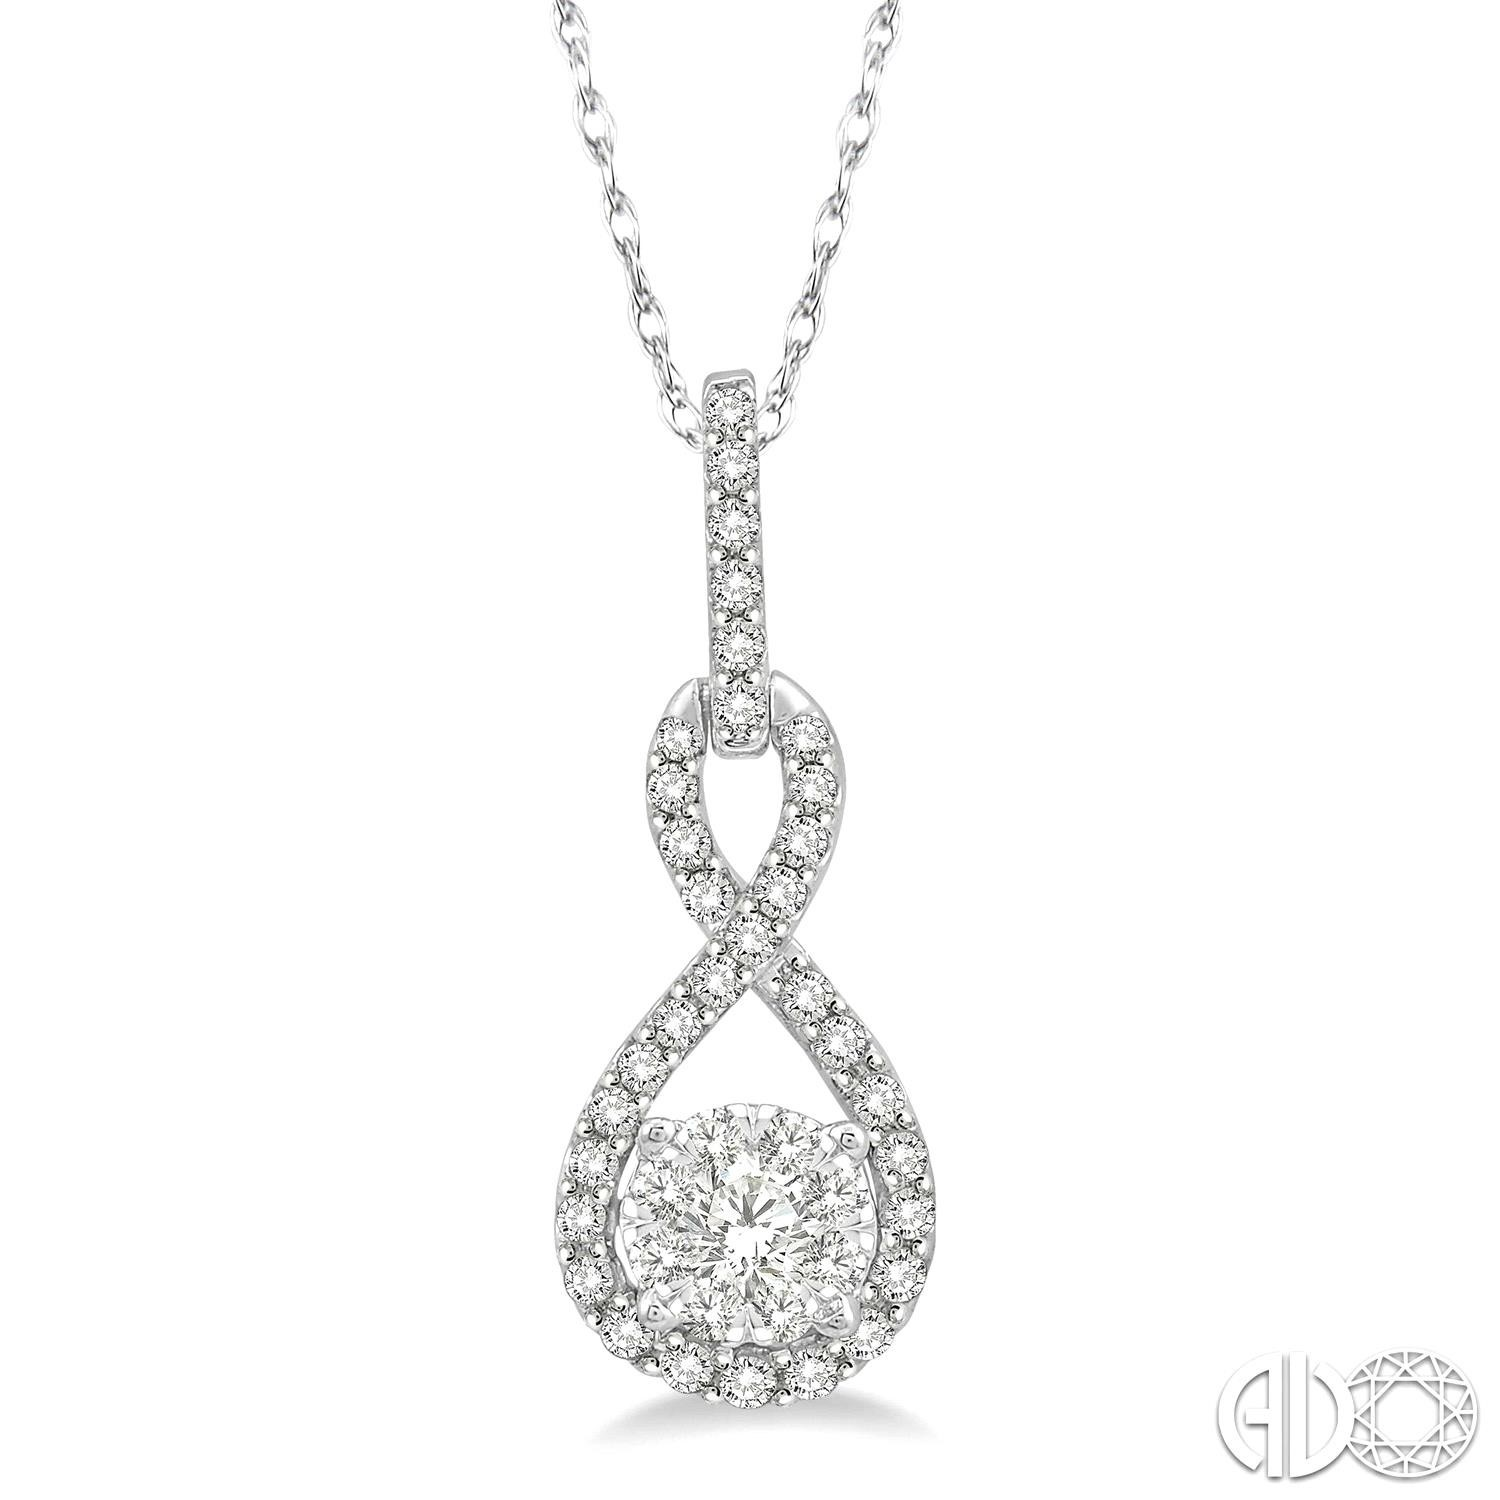 1/4 Ctw Winding Round Cut Diamond Lovebright Pendant With Link Chain in 14K White Gold